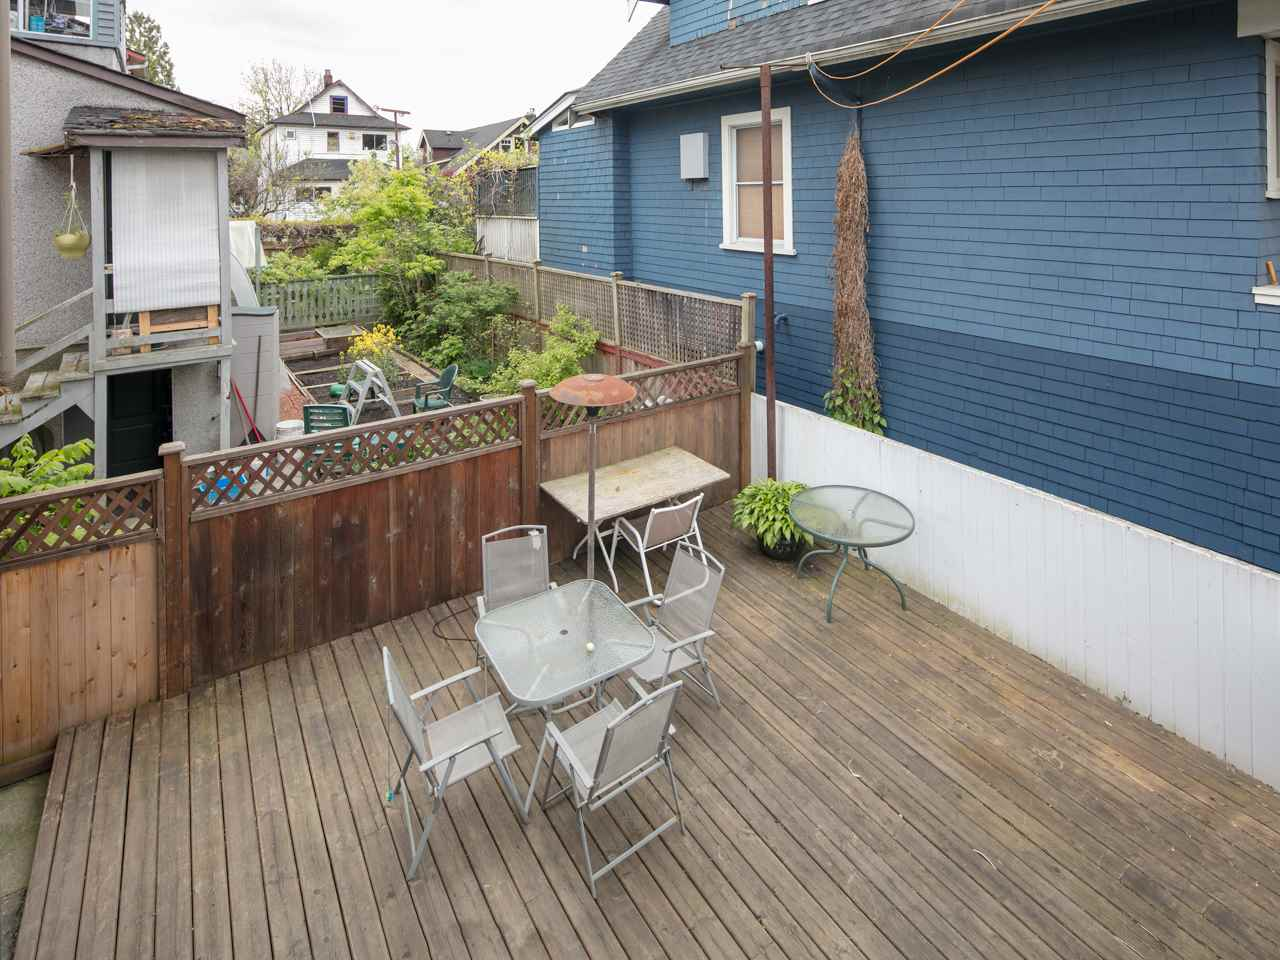 Photo 9: 1505 SALSBURY Drive in Vancouver: Grandview VE House for sale (Vancouver East)  : MLS(r) # R2179781